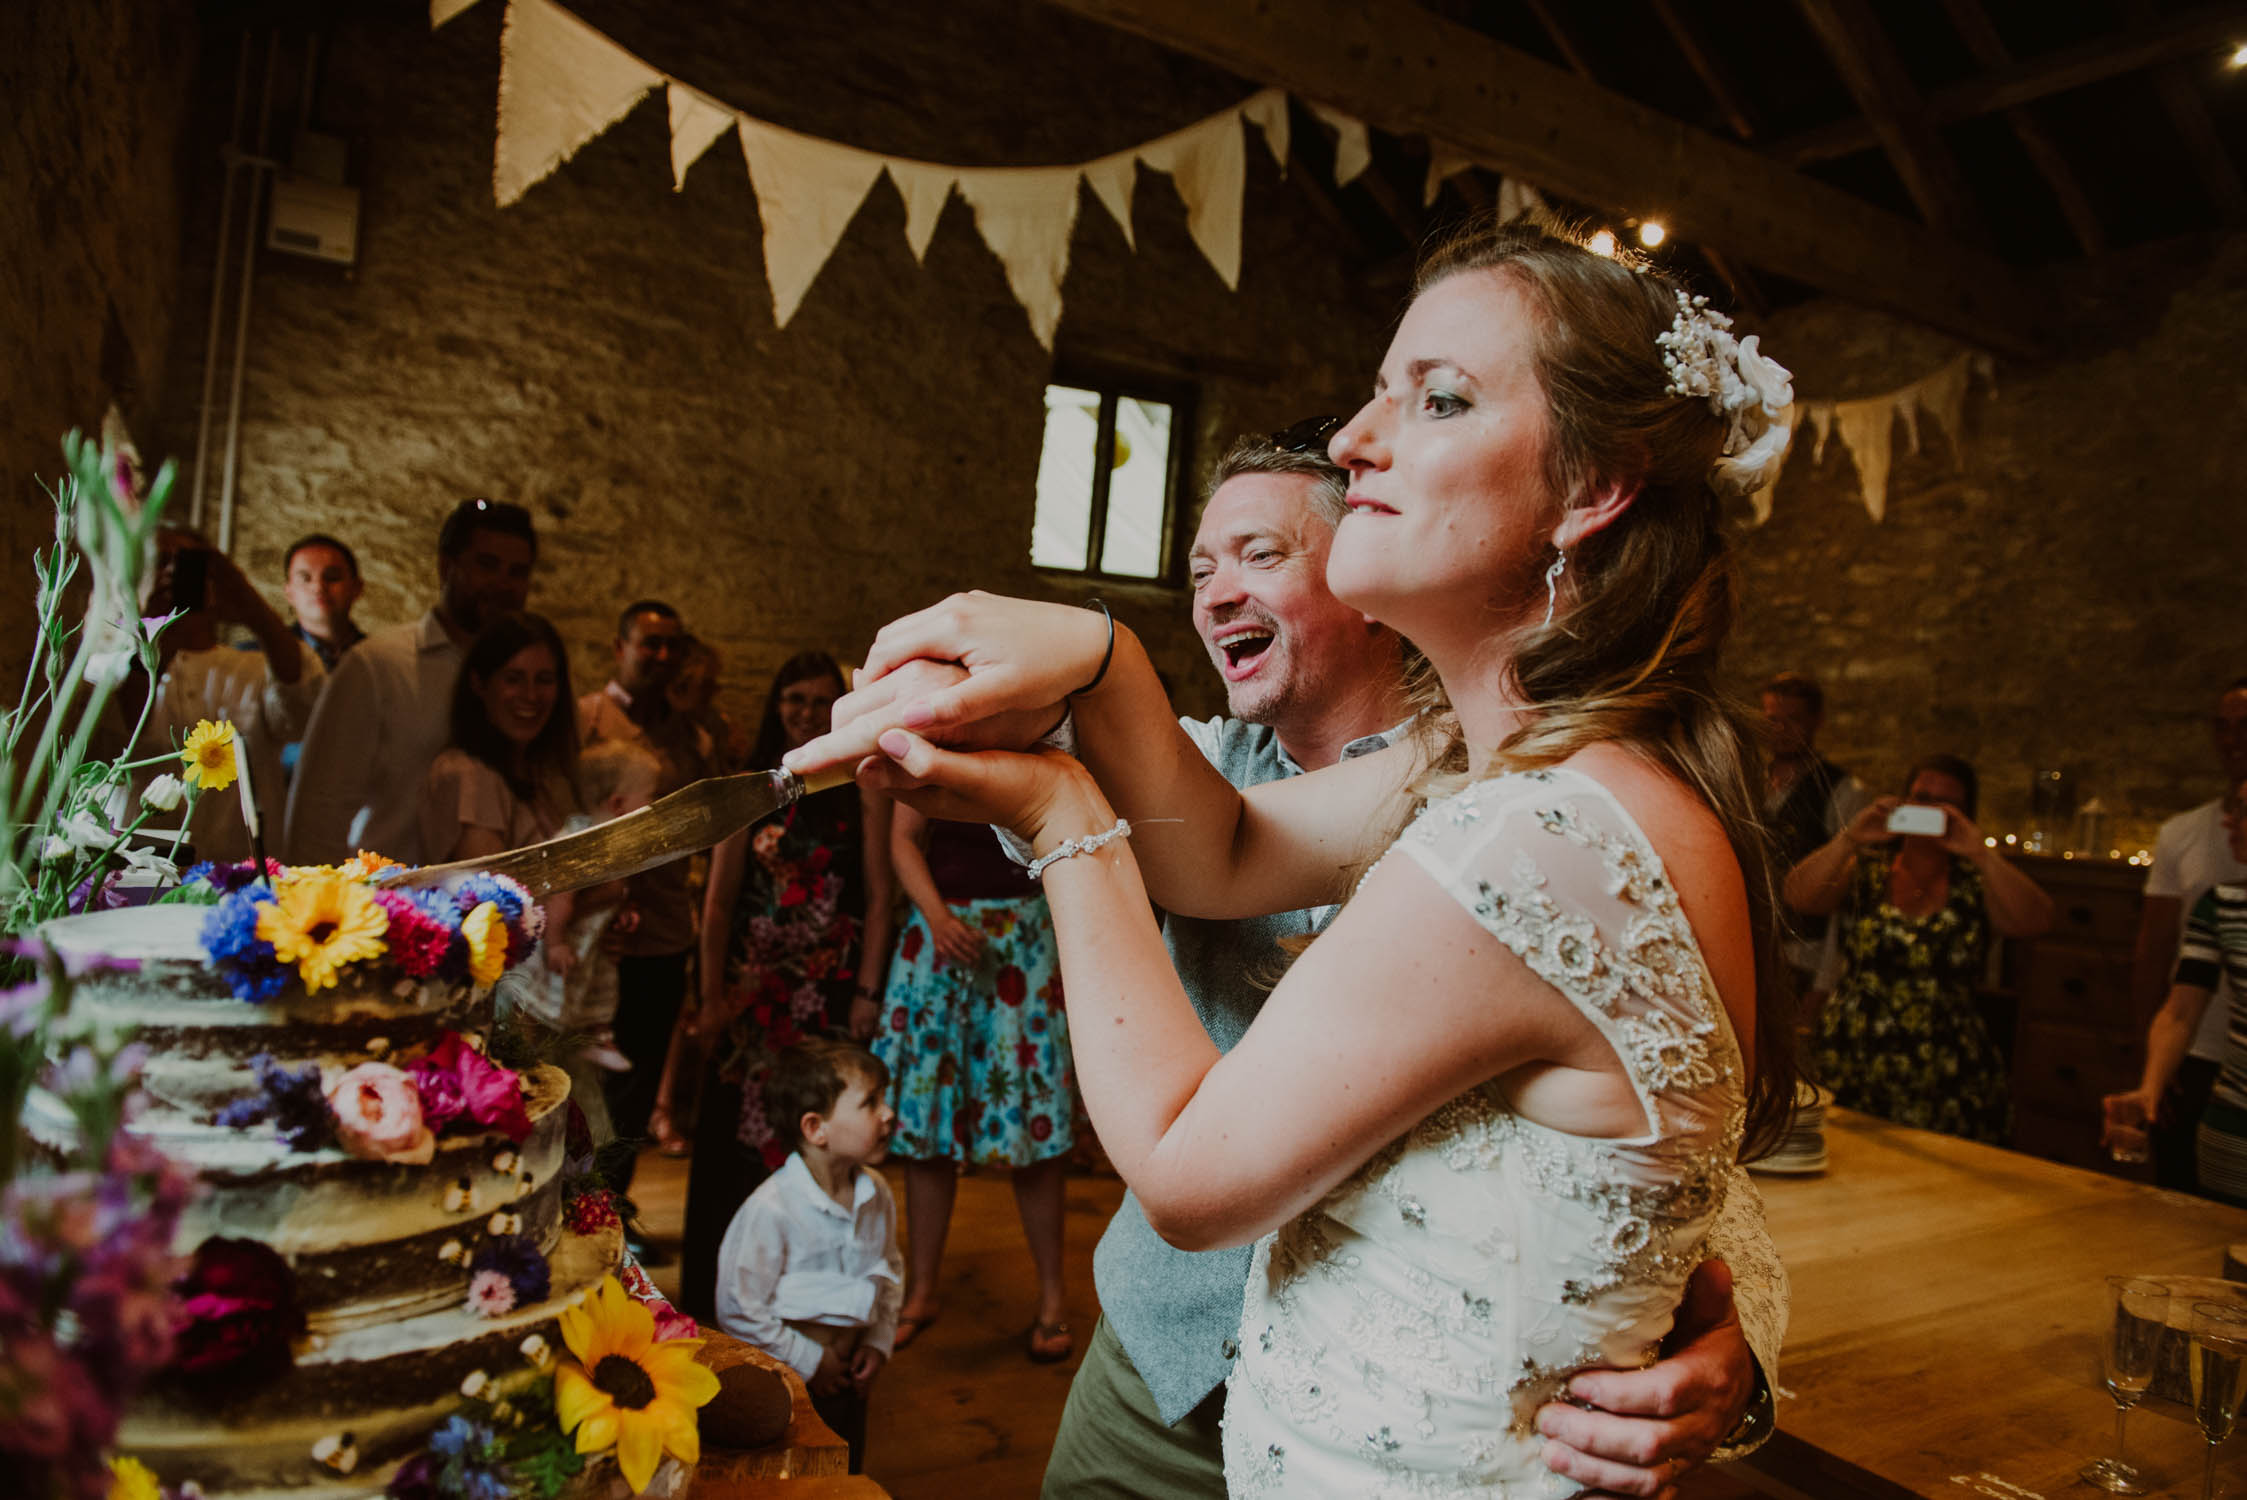 somerset wedding photographer capturing bride and groom cutting the cake, streamcombe farm wedding